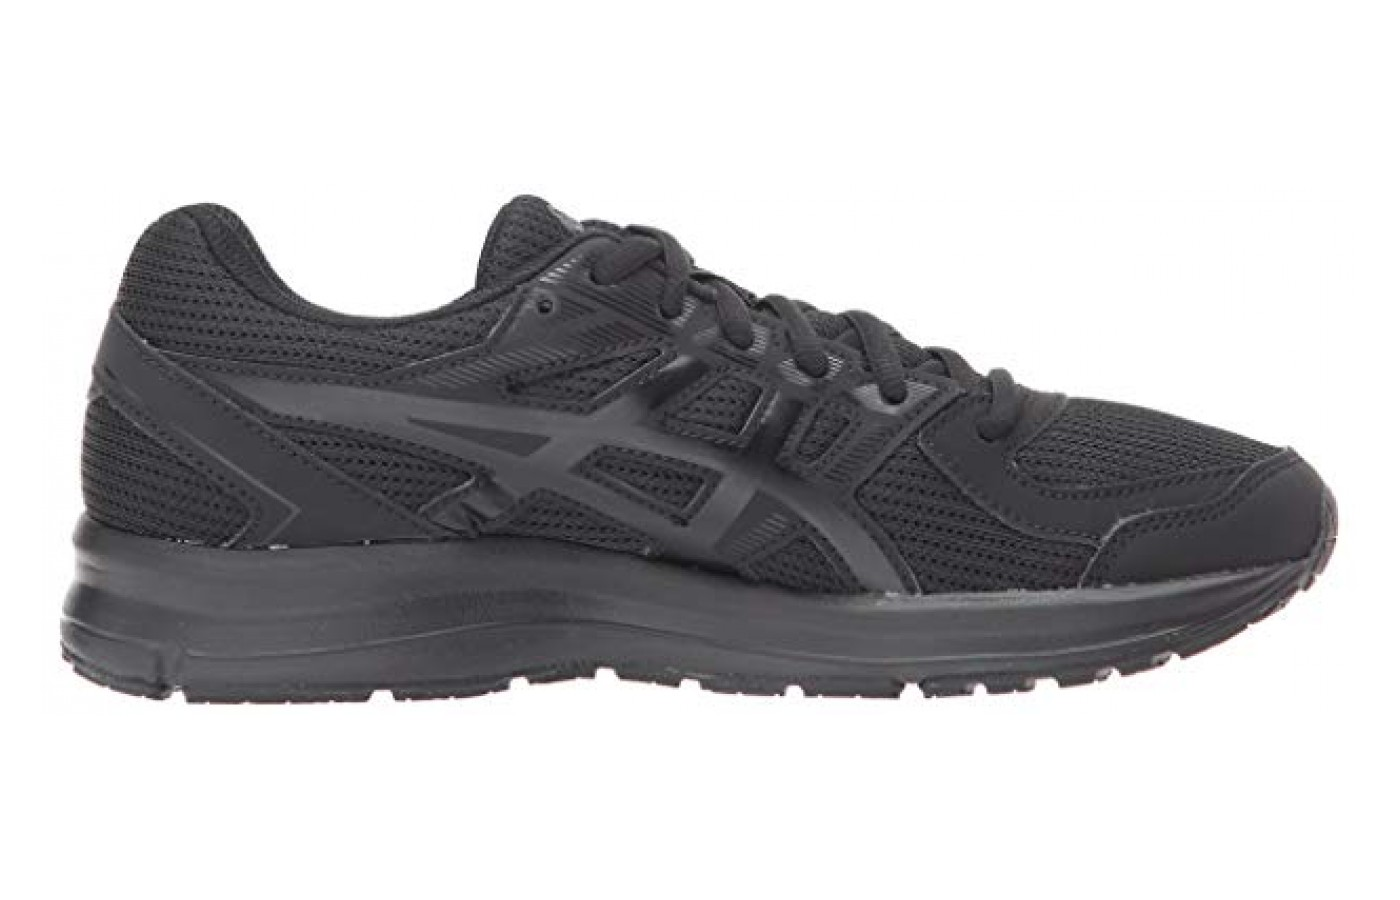 new style 94e1c 220a6 Asics Jolt: To Buy or Not in 2019 | TheGearHunt